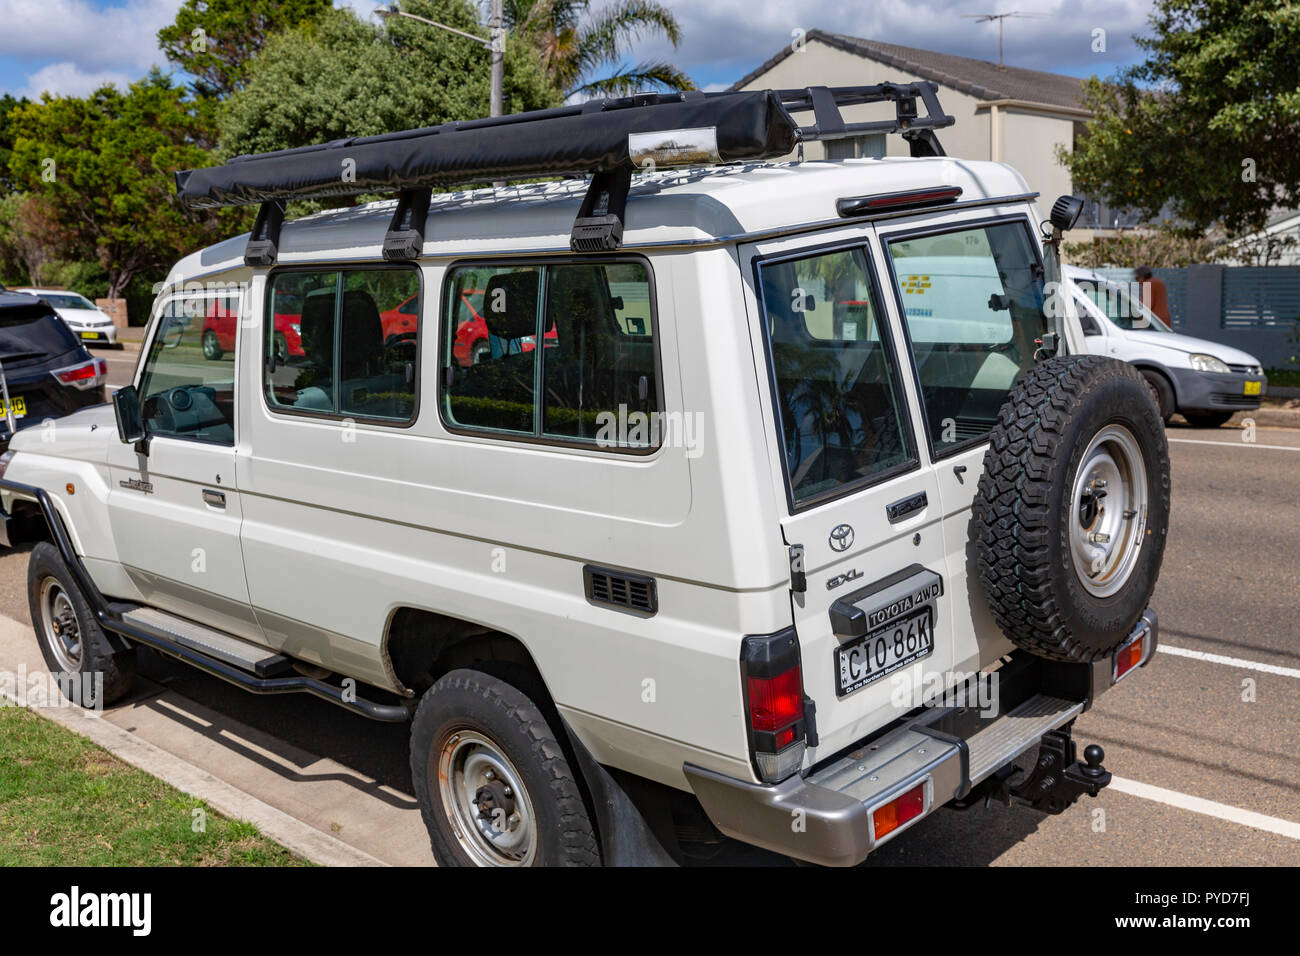 Off Road Wagon >> Toyota Landcruiser Wagon 76 Overlanding And Offroad Vehicle